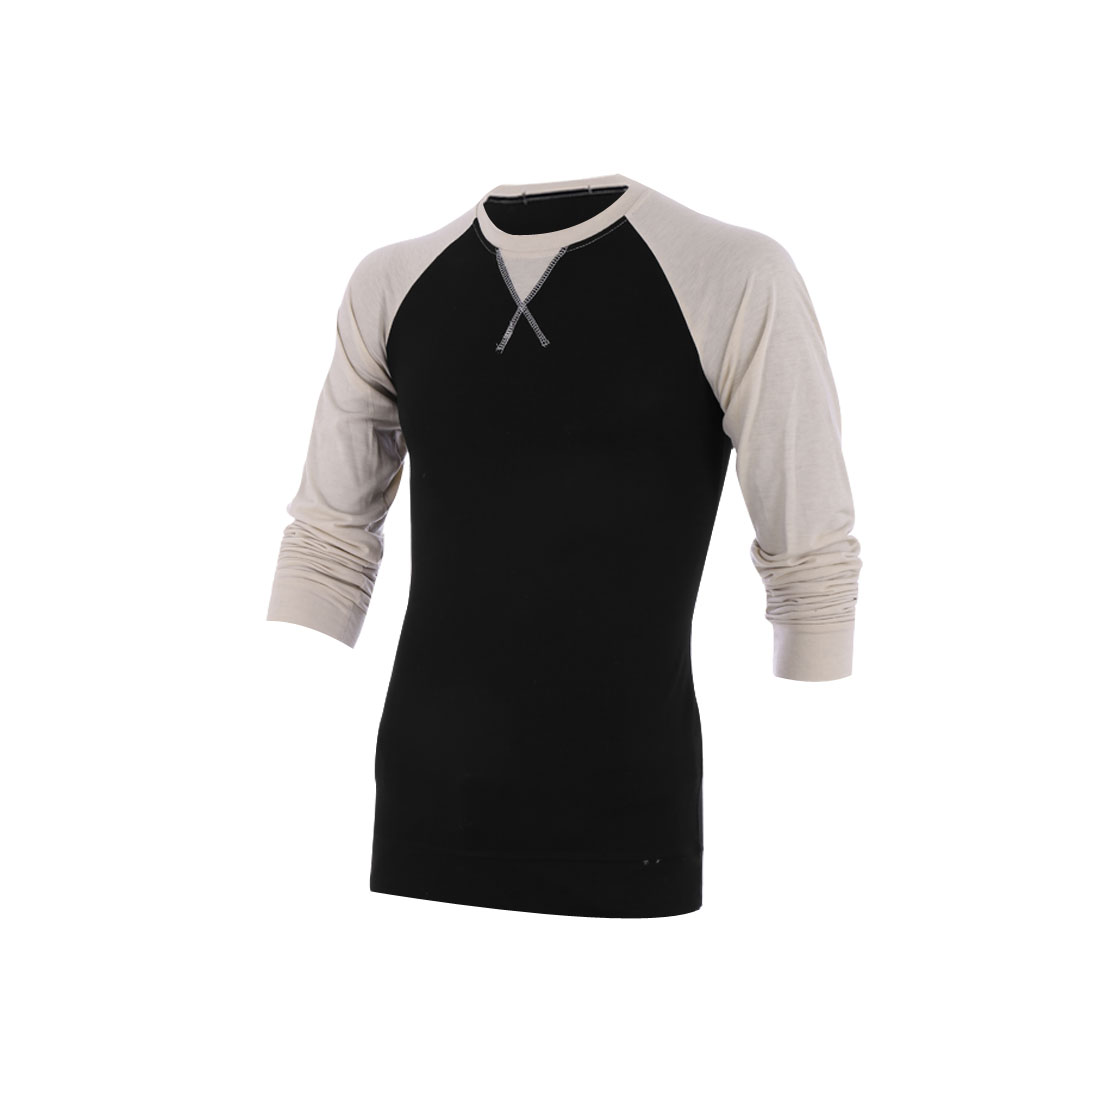 Stylish Mens Round Neck Long Raglan Sleeve Black Biege Spring Shirt M